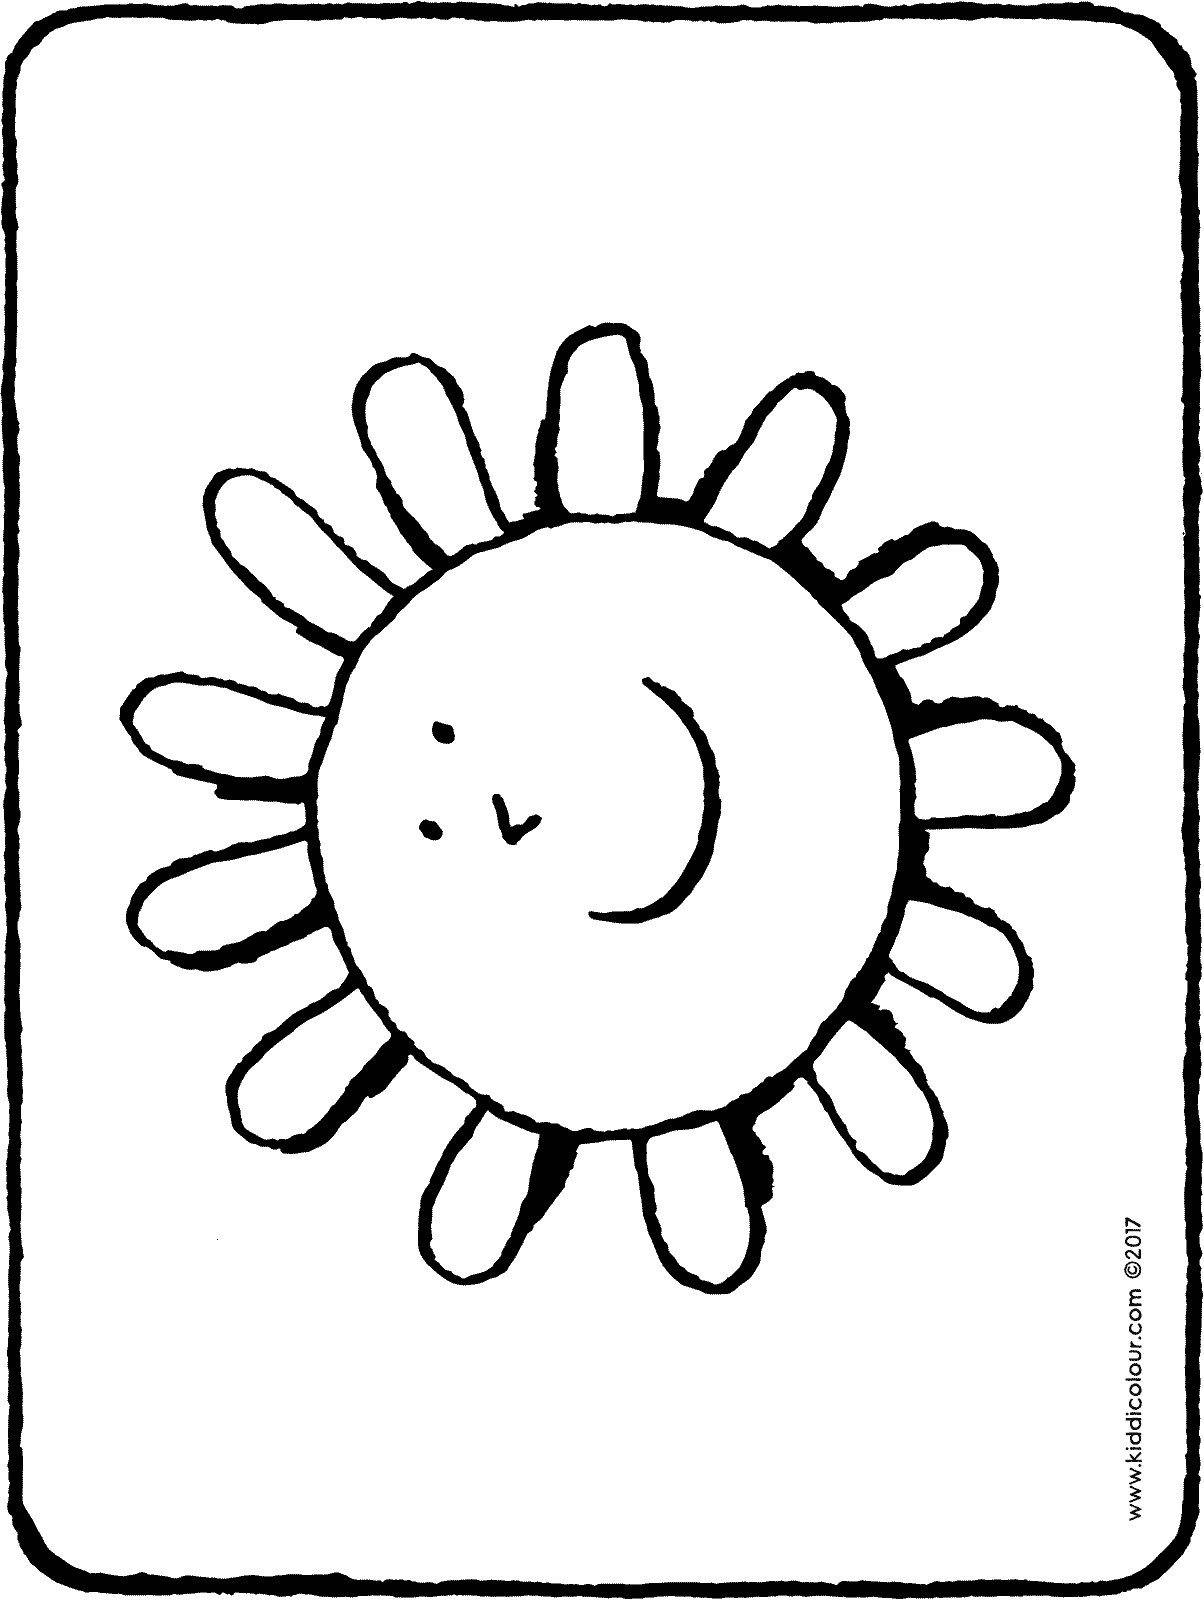 sun colouring page drawing picture 01H